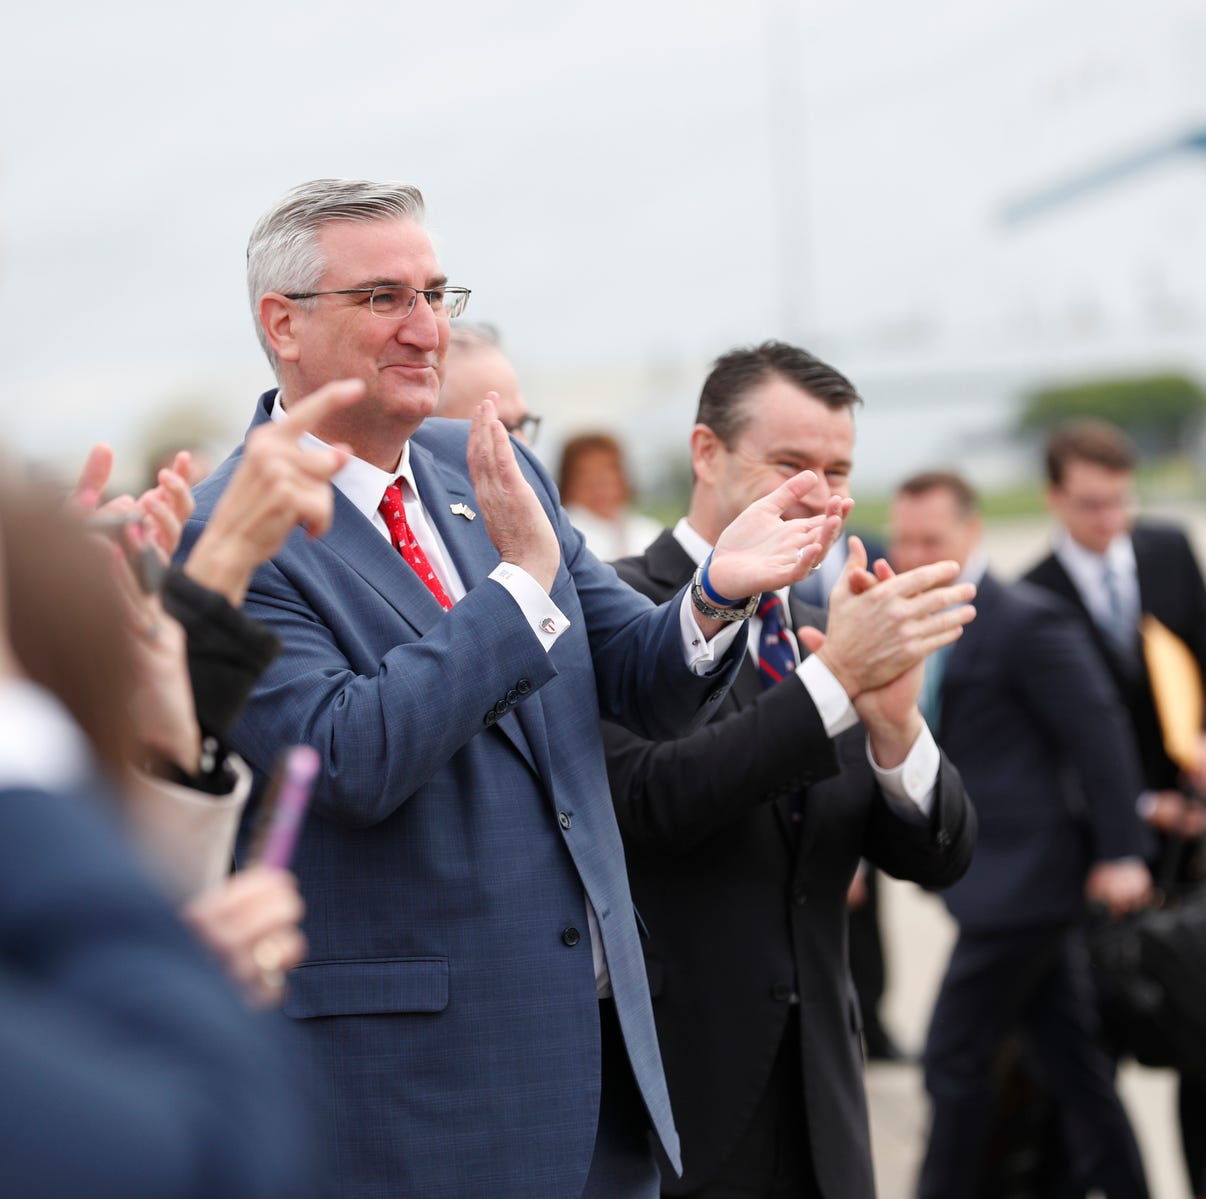 With NRA in Indy, Indiana Gov. Holcomb signs bill strengthening 'stand your ground' law